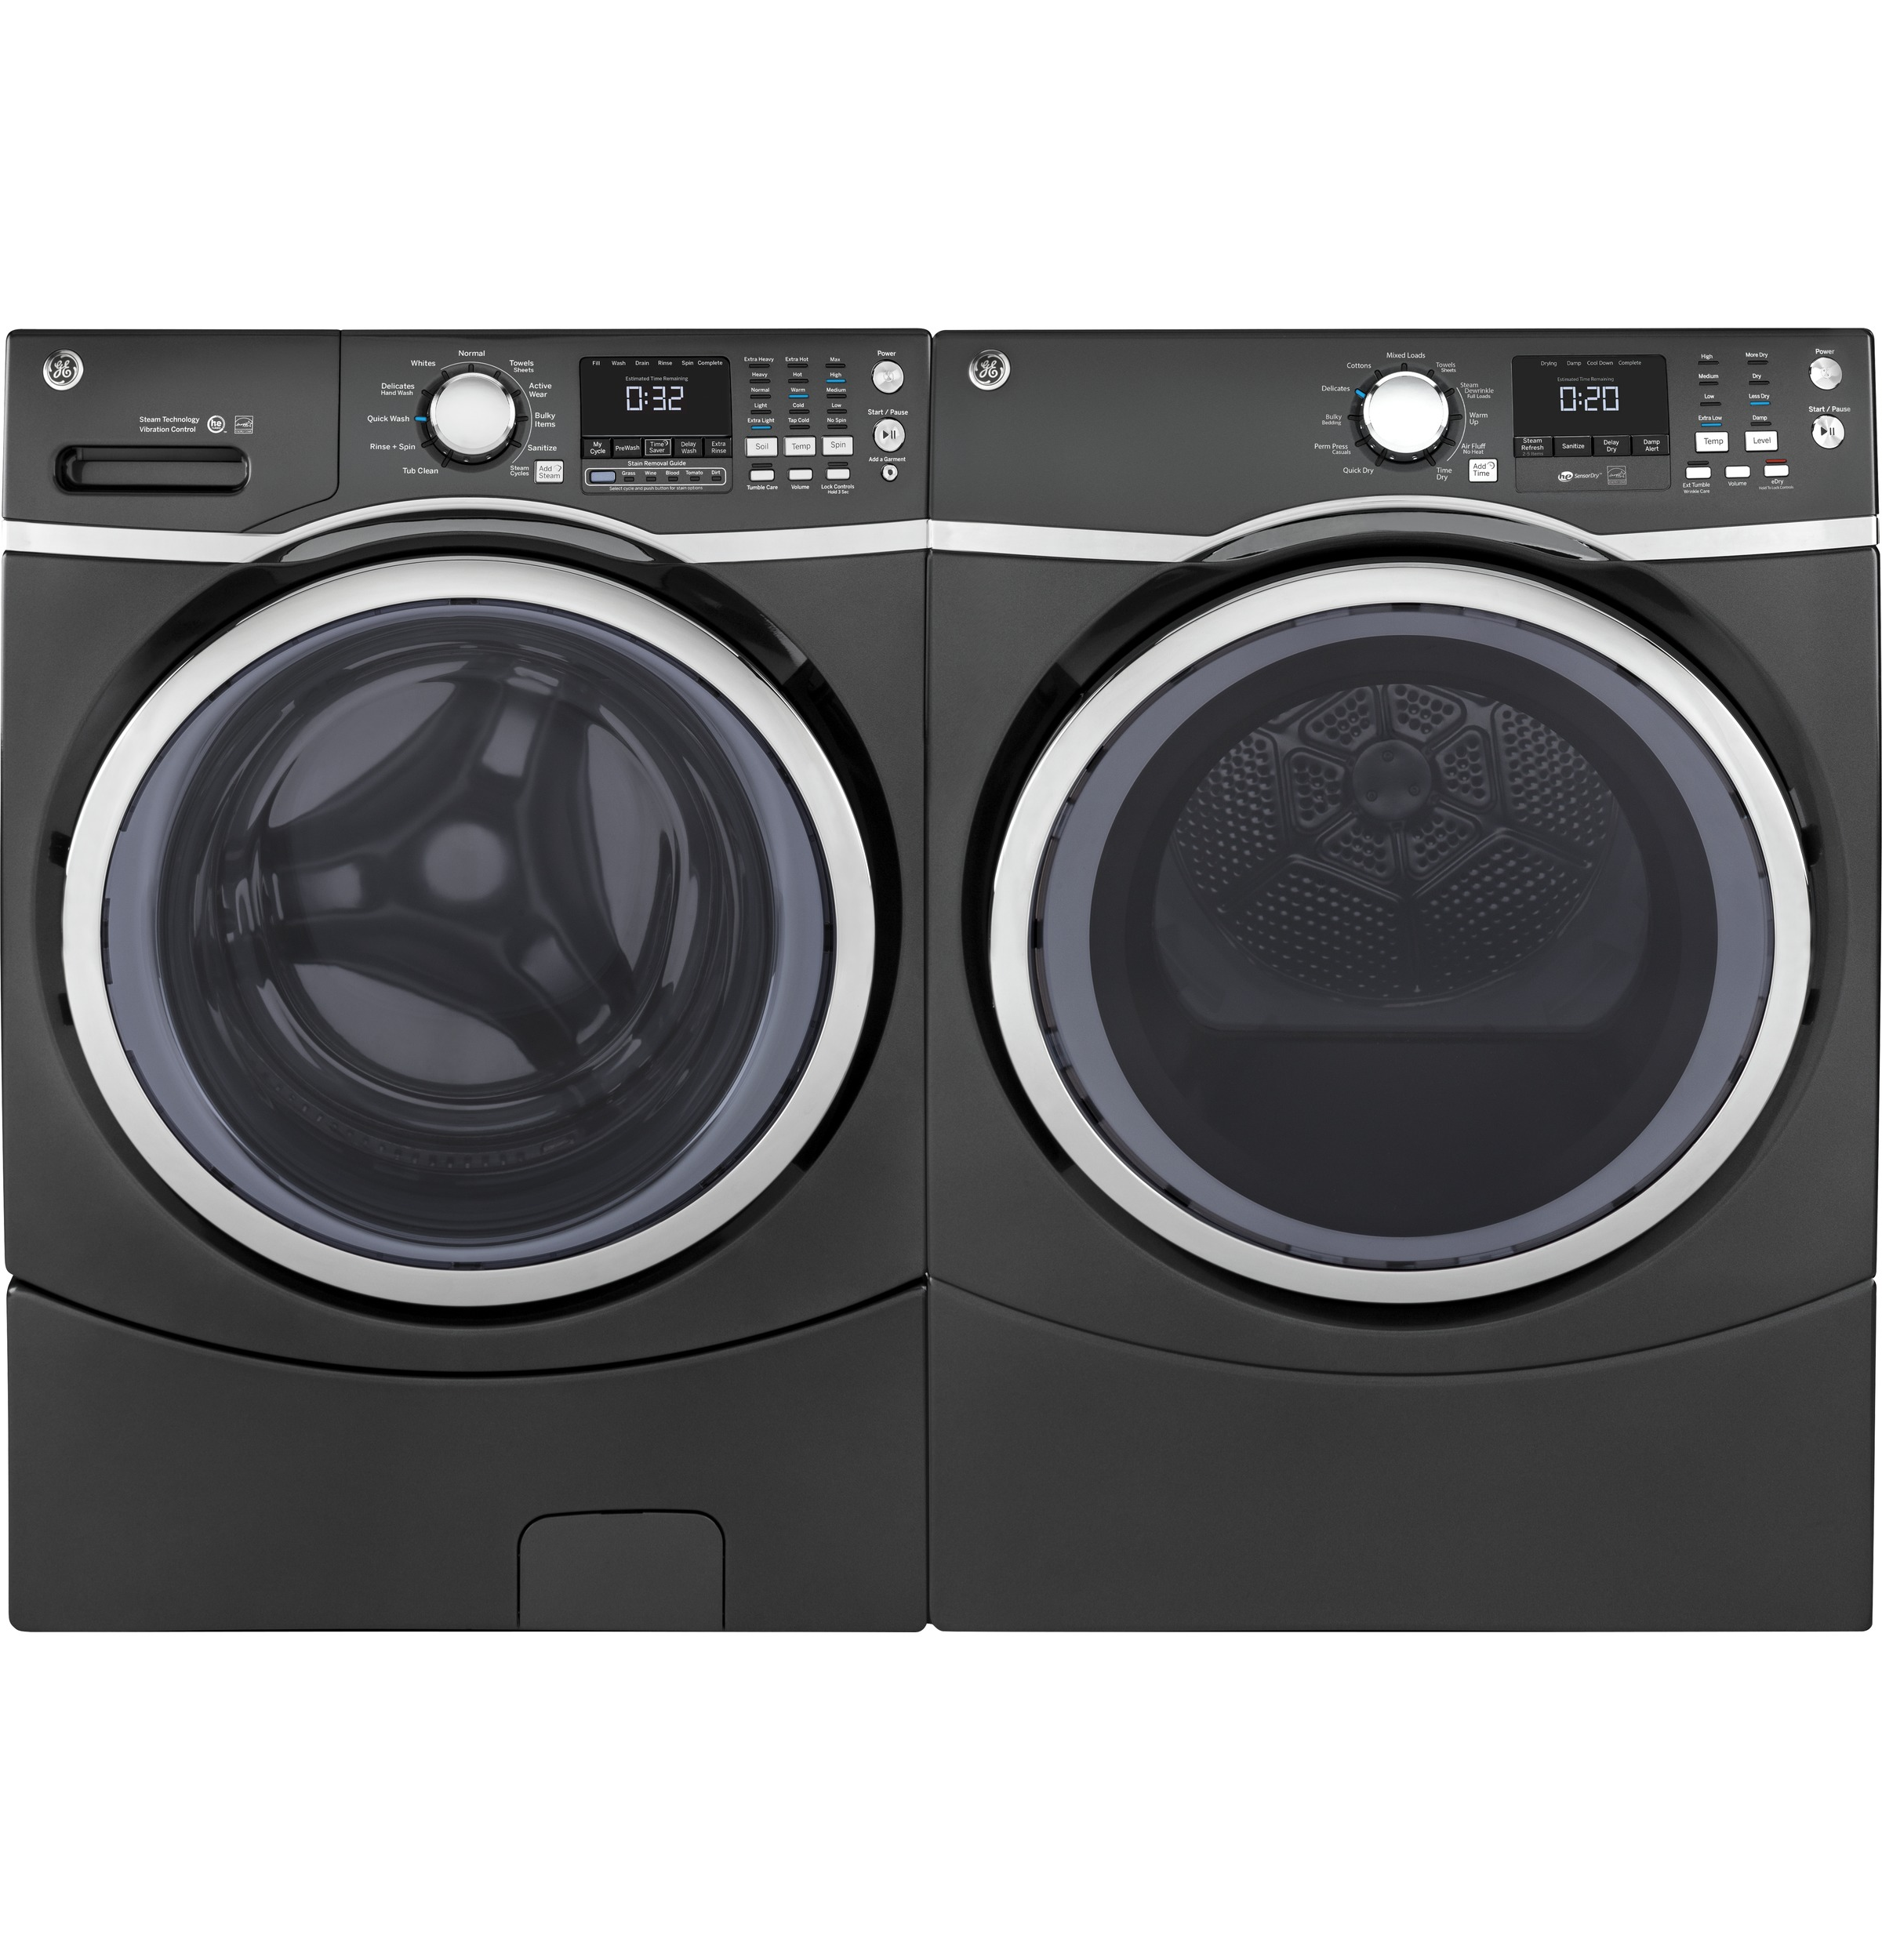 Model: GFW450SPMDG   GE® 4.5 cu. ft. Capacity Front Load ENERGY STAR® Washer with Steam